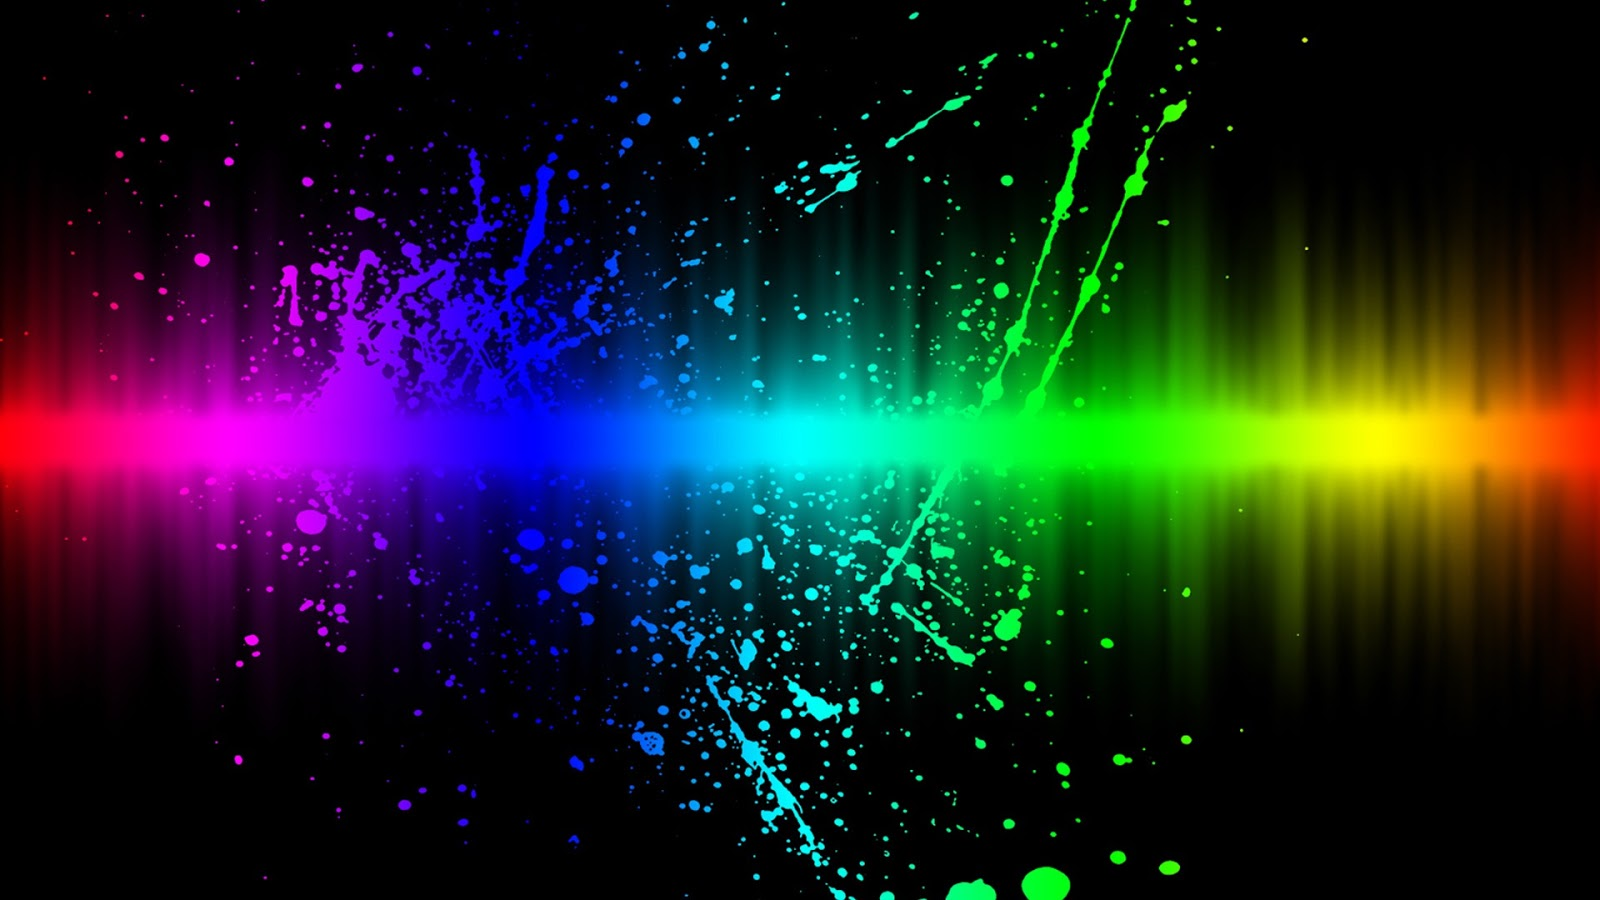 Cool Images Rainbow Colors 216.7 Kb